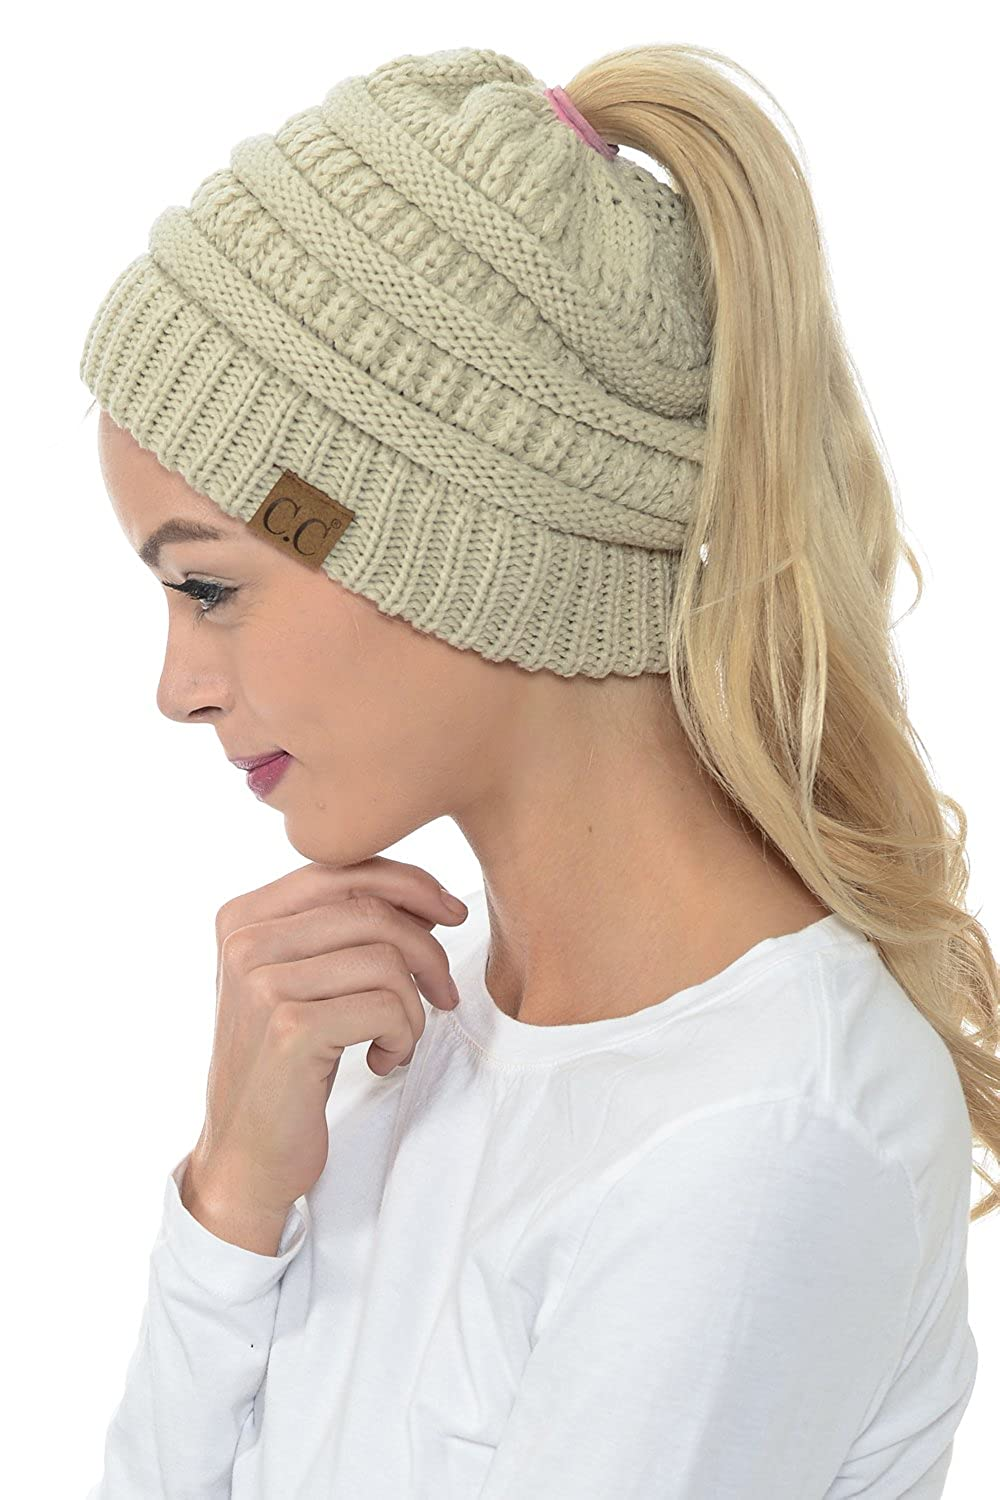 YourStyle CC Beanie Tail Soft Stretch Cable Knit High Bun Ponytail Beanie  (Beige) at Amazon Women s Clothing store  5c98fe3be3e